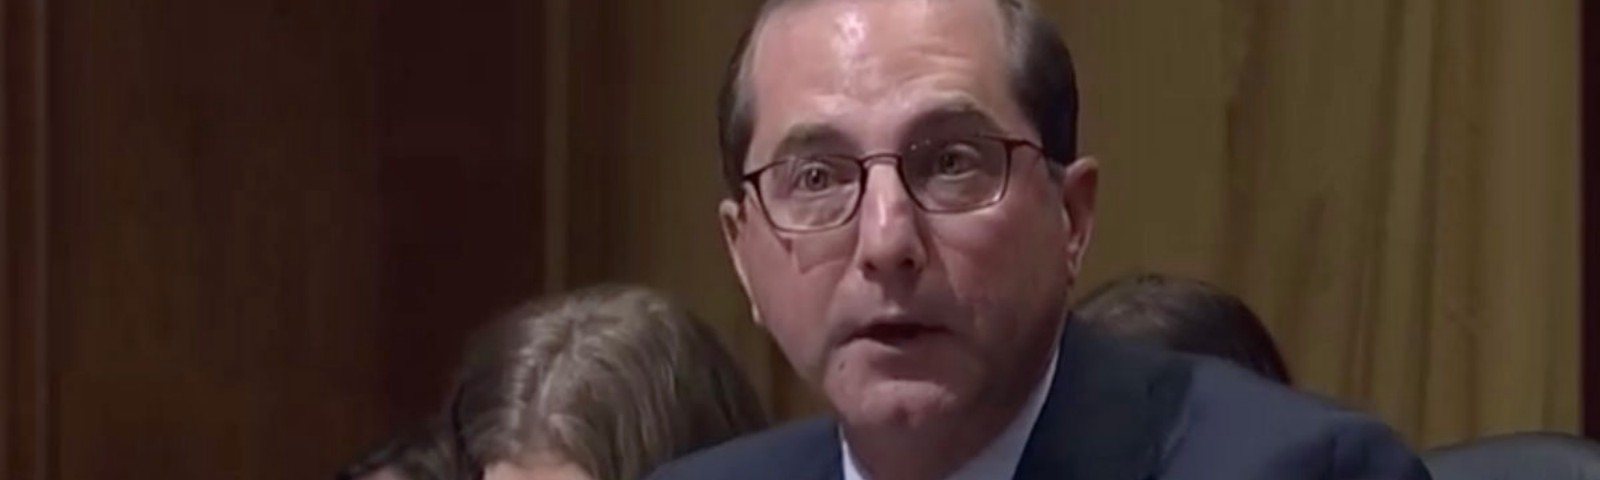 Will HHS Nominee Alex Azar Follow Through On Promise to Address Health Disparities Among Minorities?